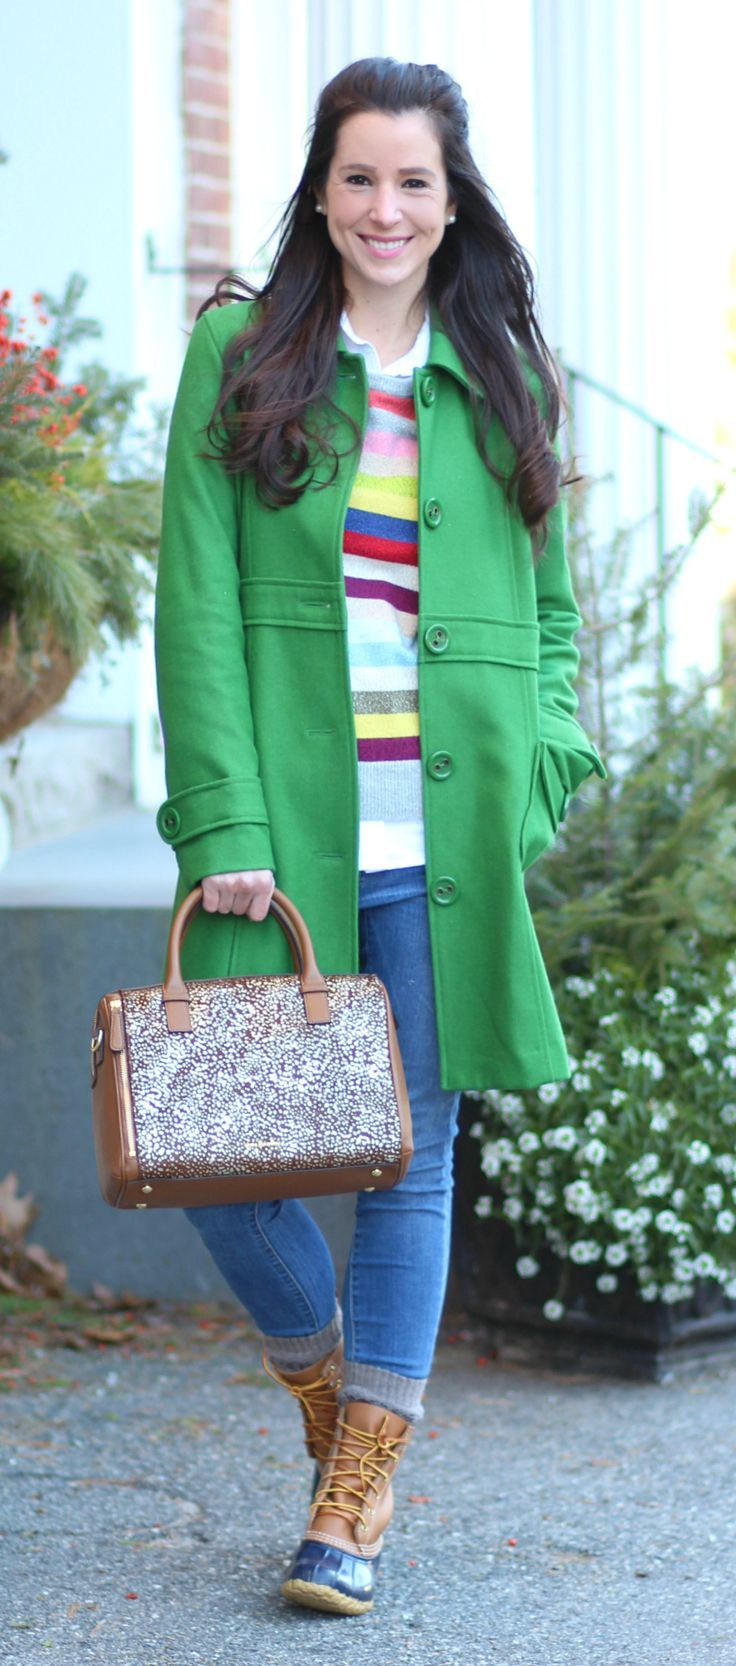 Love this preppy winter outfit idea! Crazy stripe sweater with long green trench coat, light wash jeans, and LLBean boots. So cute and colorful!